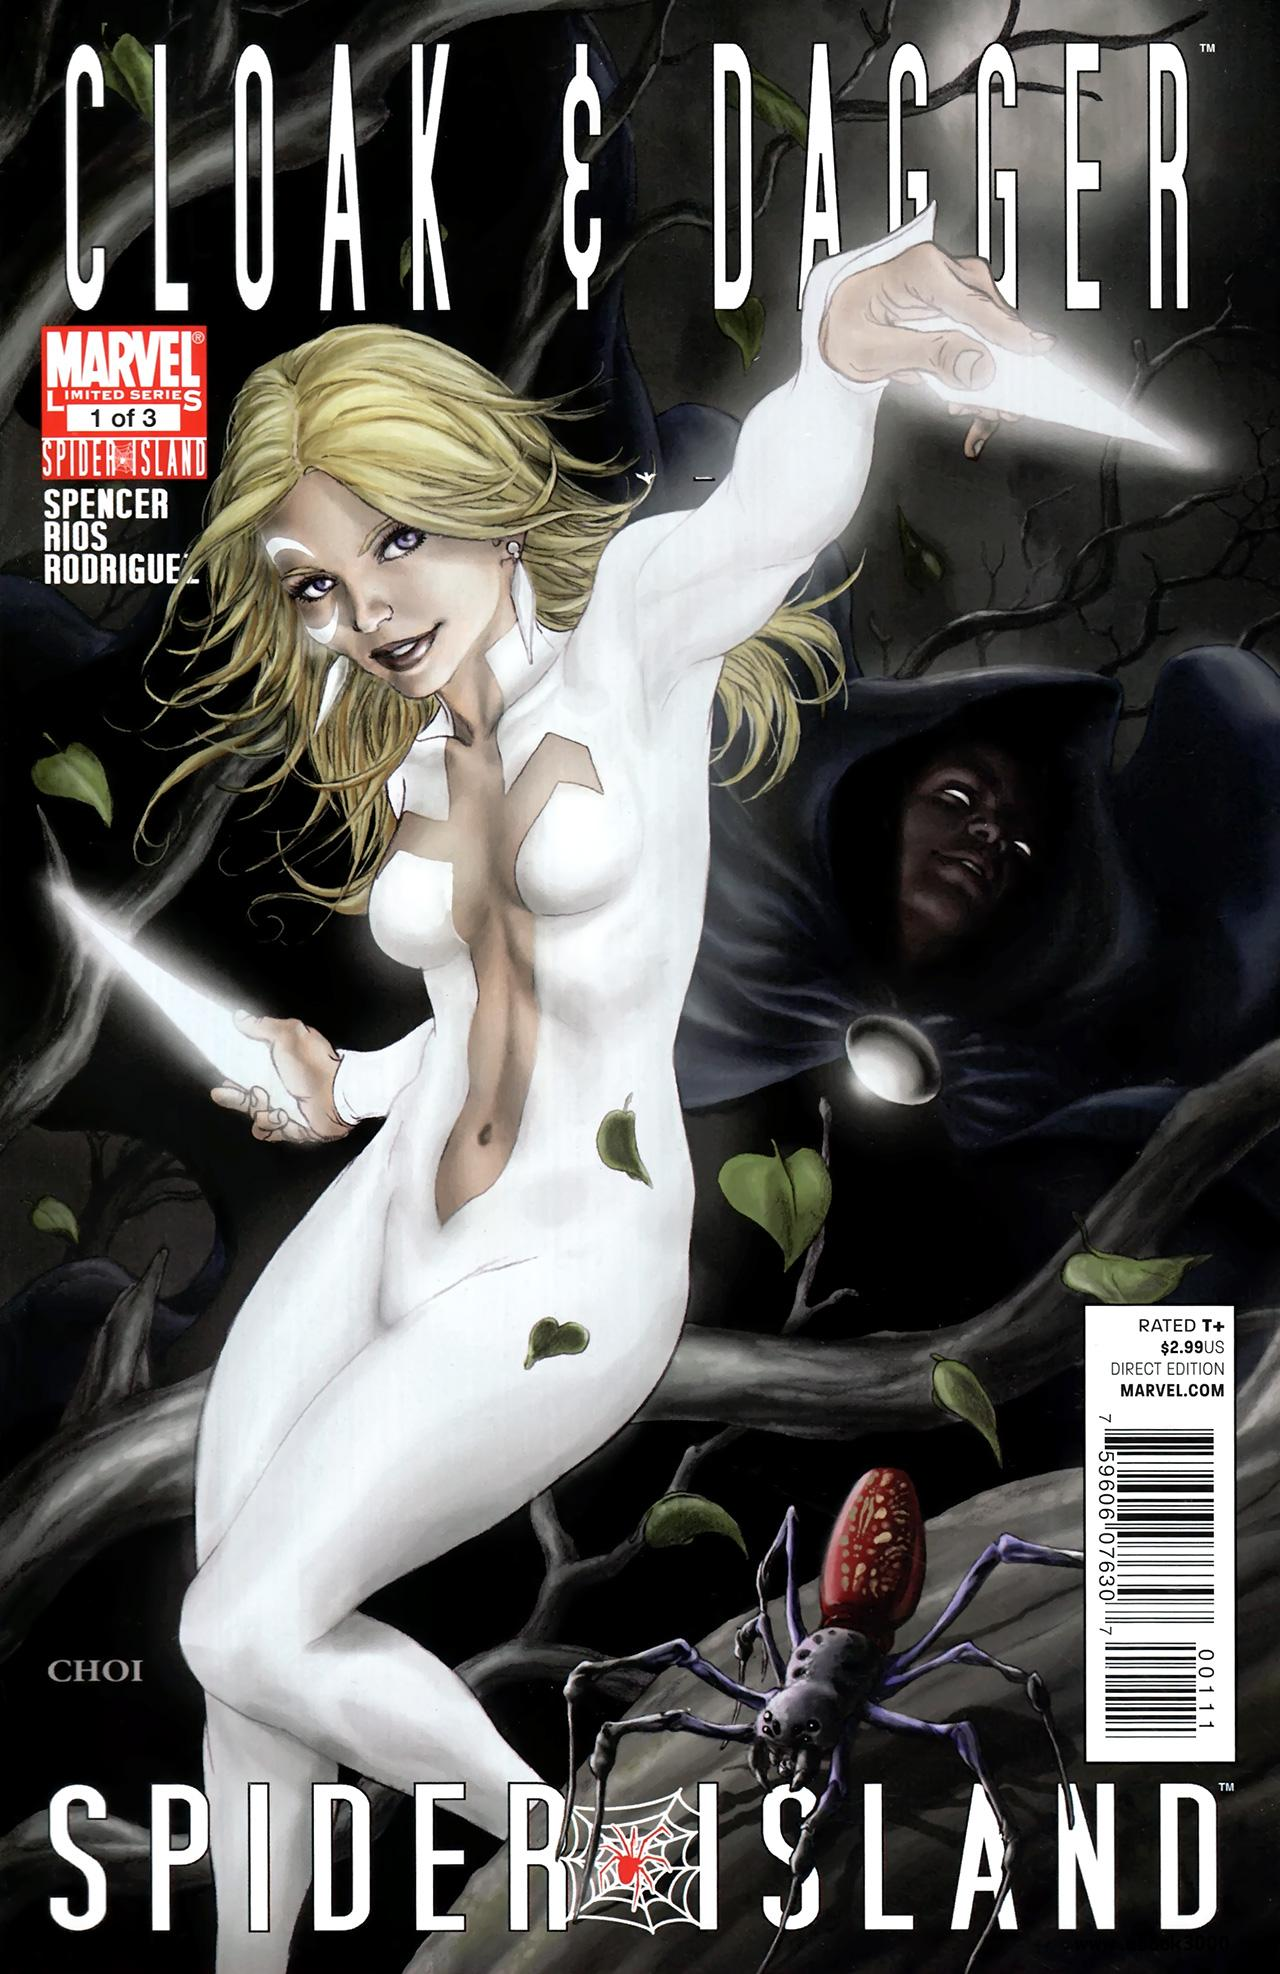 Spider-Island: Cloak & Dagger #1 (of 03) (2011) free download